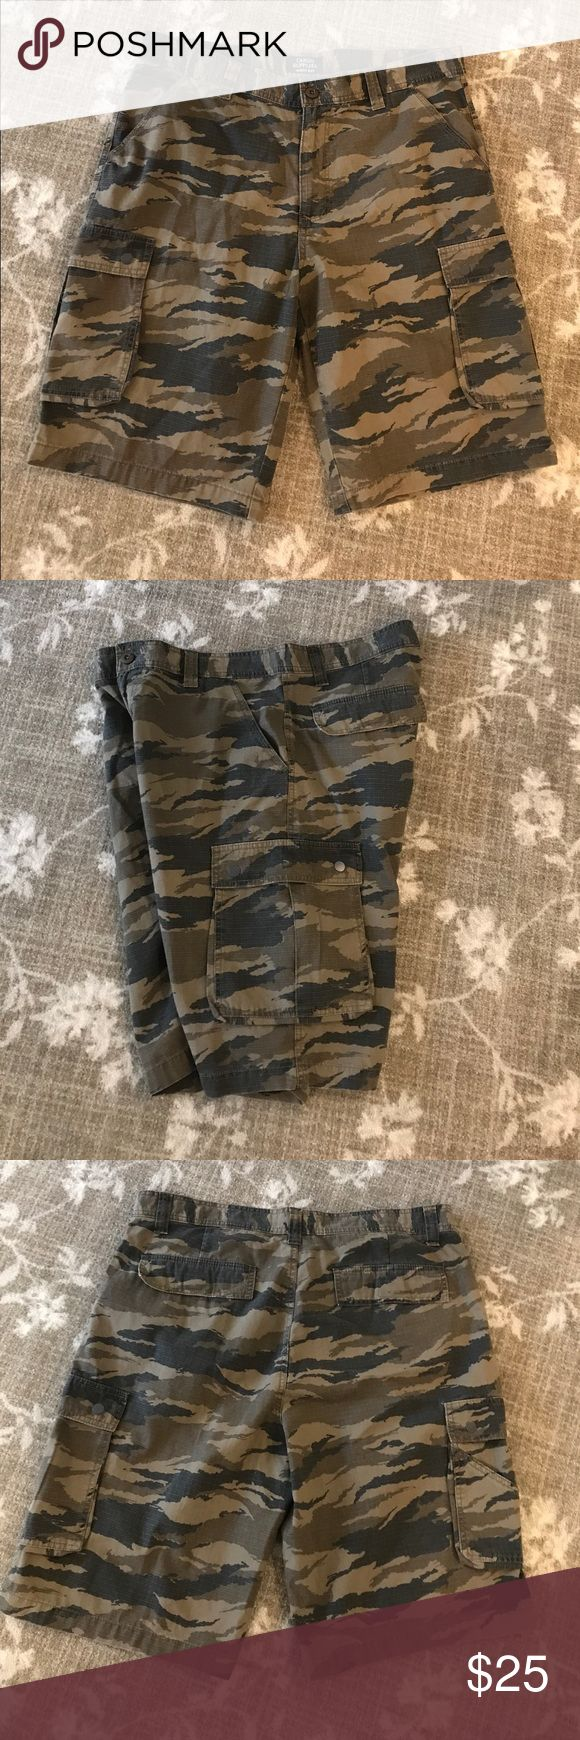 Men's Size 38 Camouflage Shorts👌🏼 Men's size 38 camouflage shorts. Velcro pockets in the back. Pockets on the sides (snaps). Pockets in the front. Worn before. I'm great condition😉 Cargo Supplies Shorts Cargo